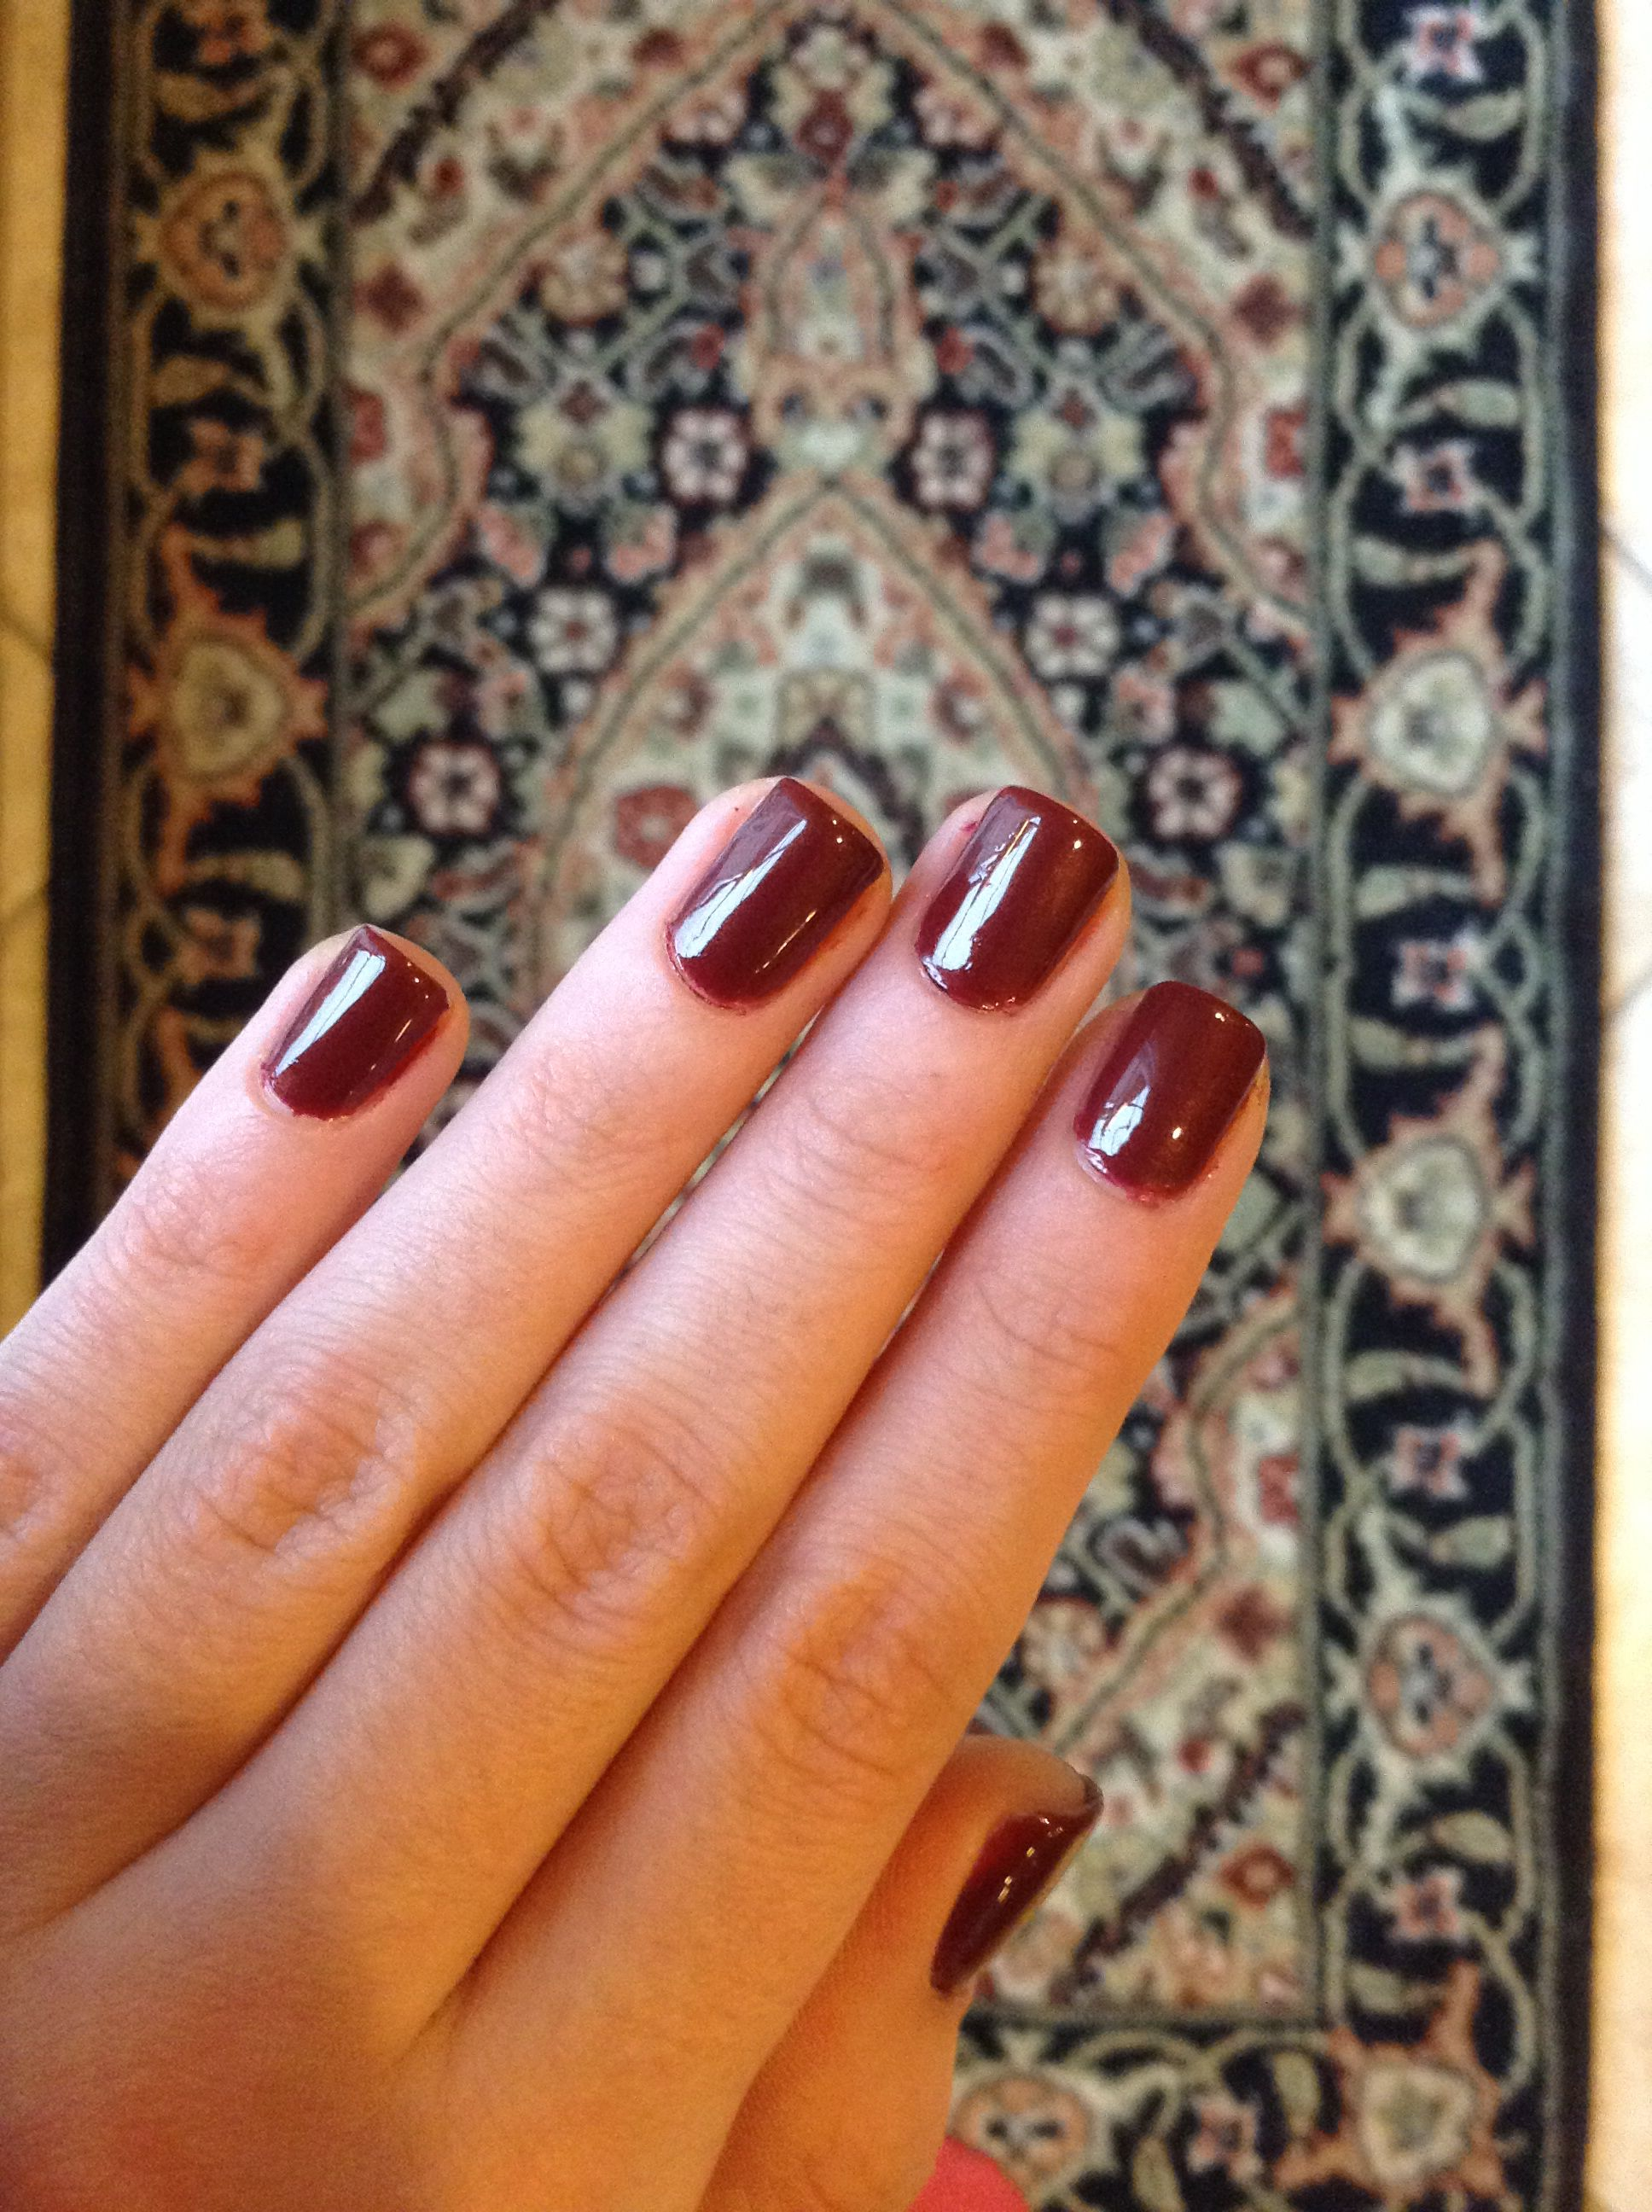 Ox blood nails❤️